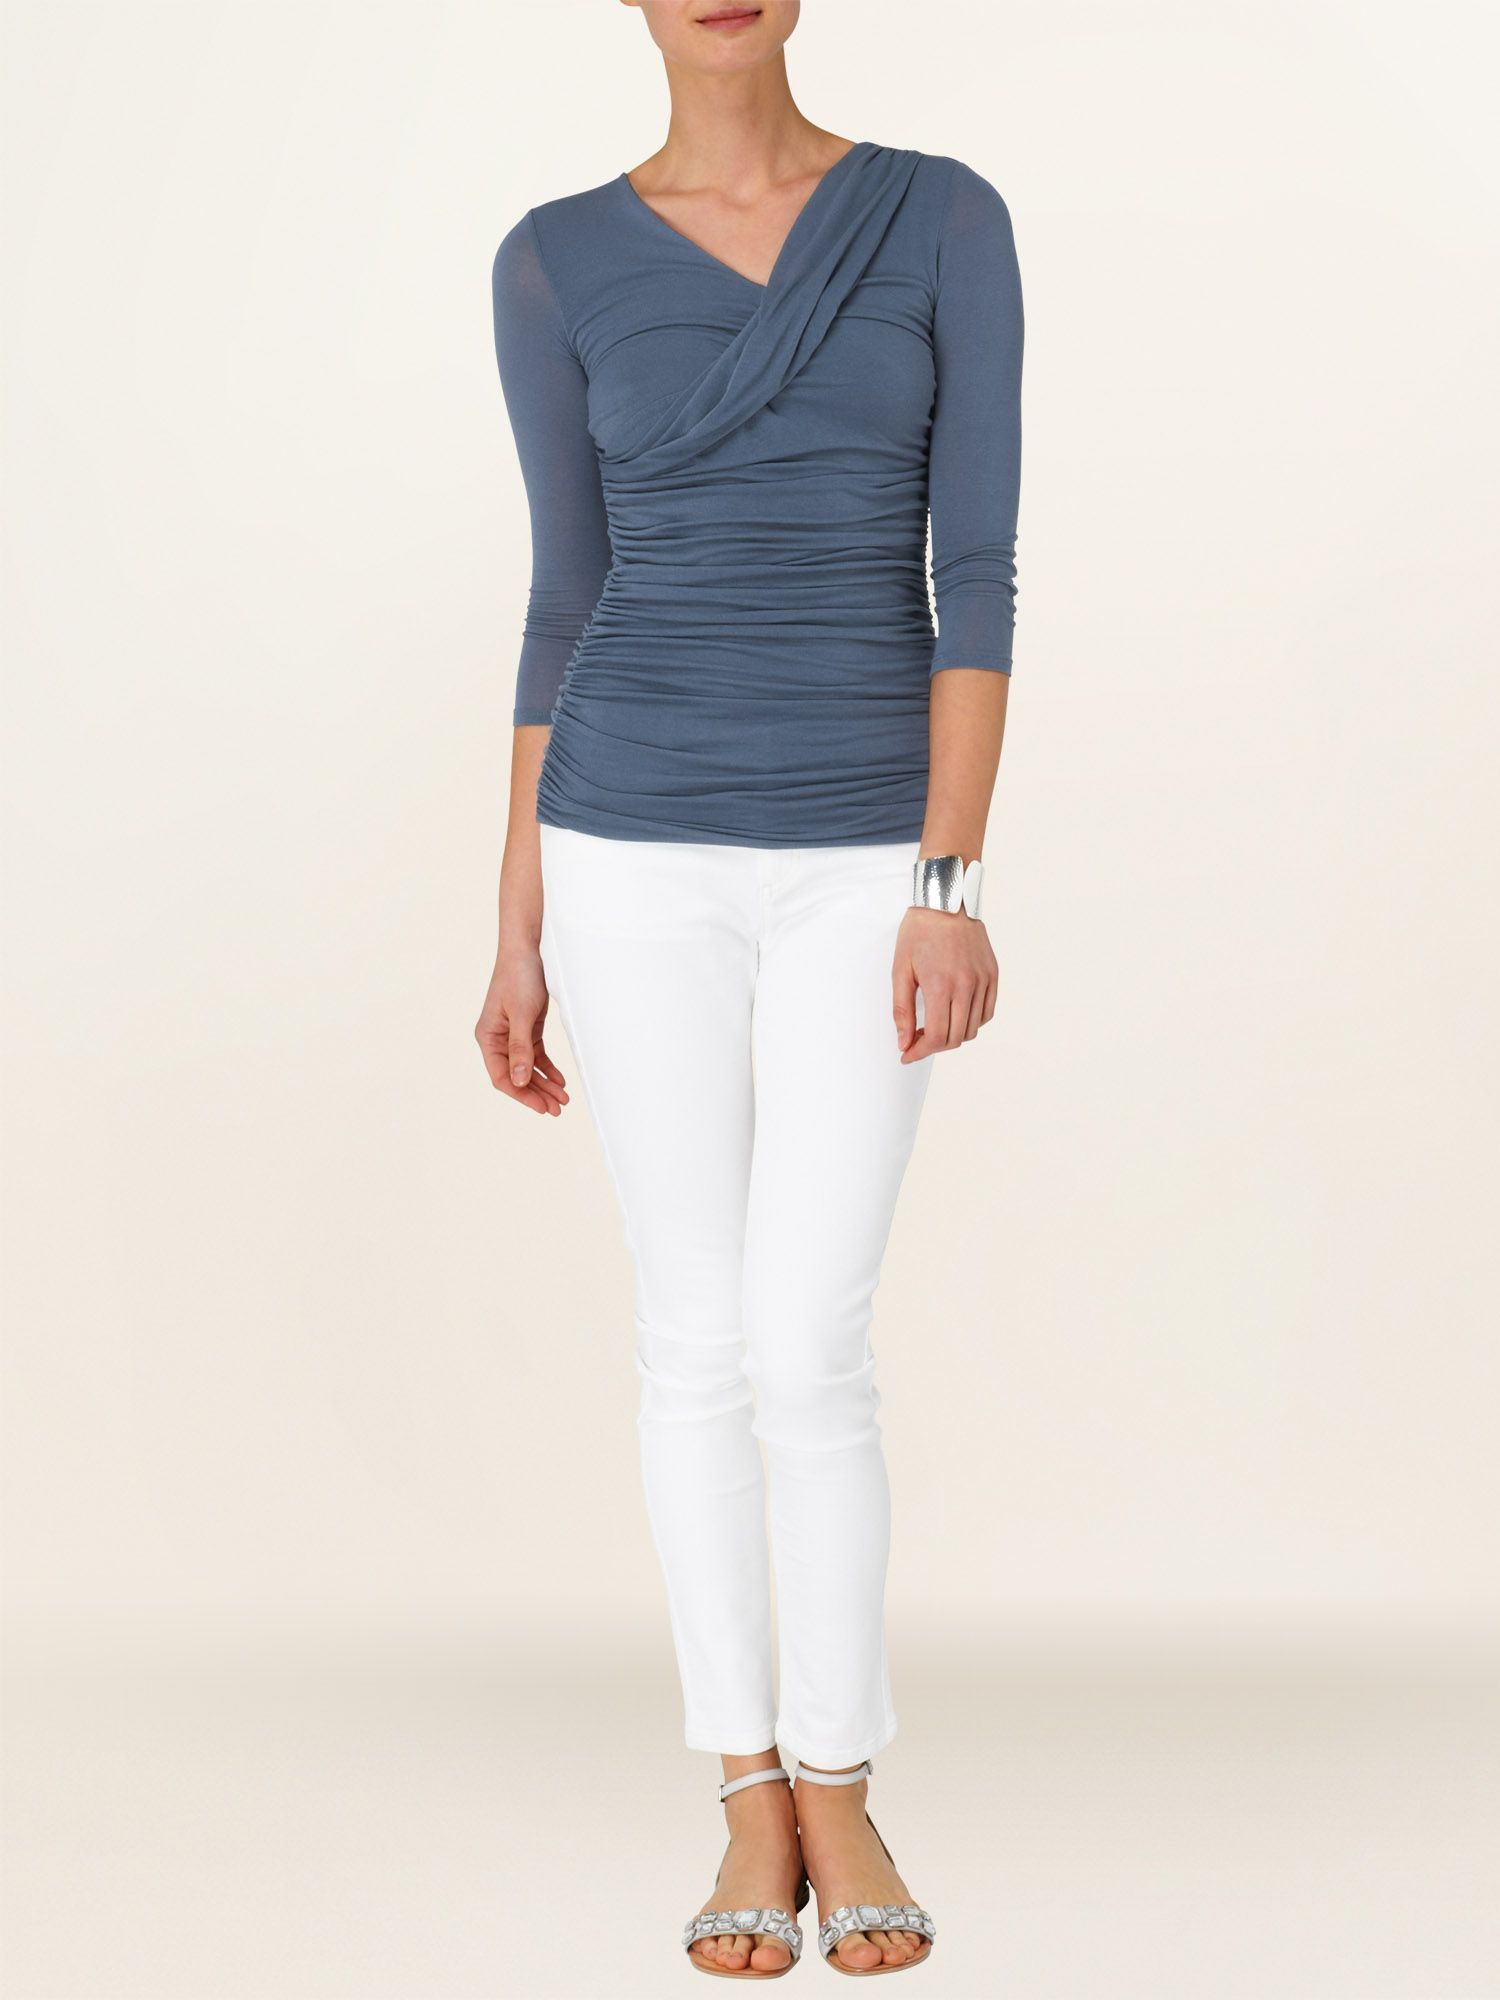 Tillie 3/4 sleeve top